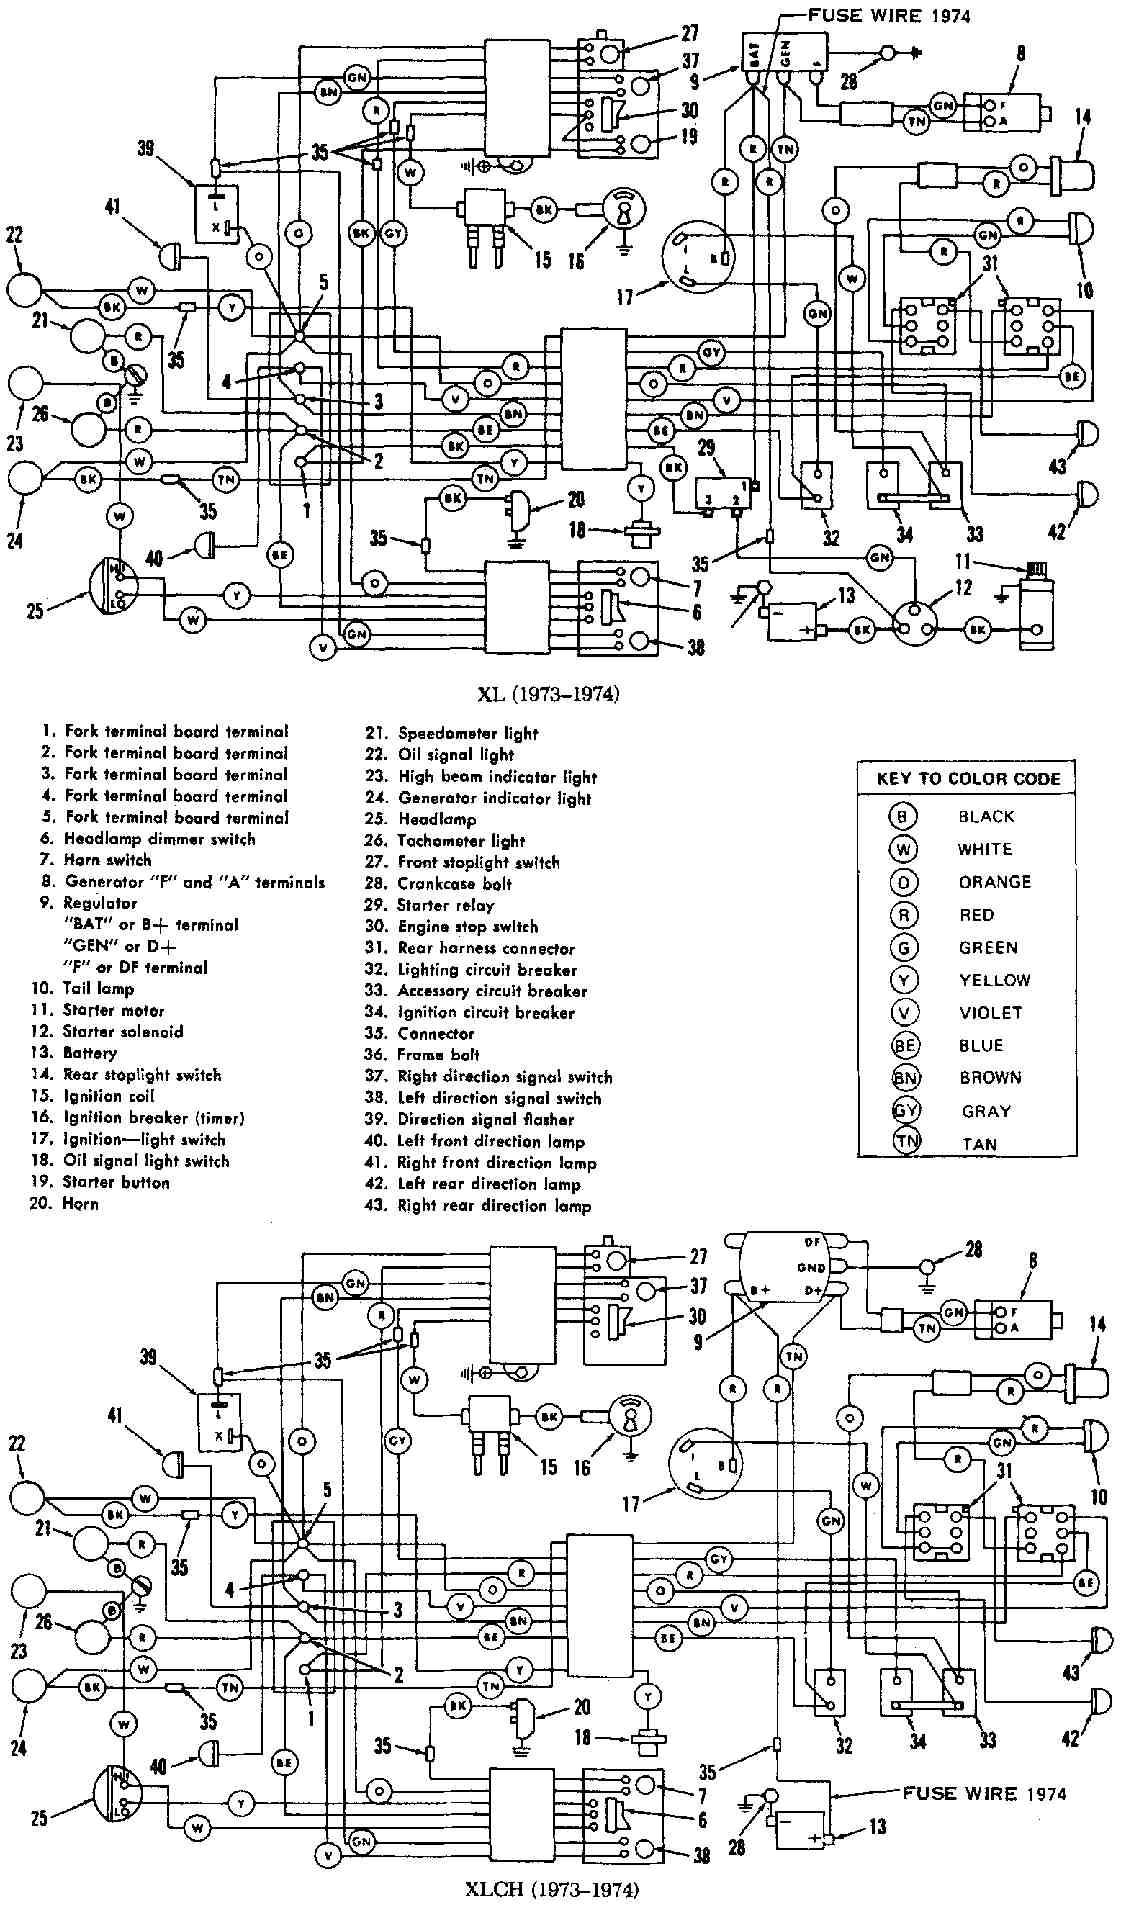 hight resolution of harley flh wiring harness diagram wiring diagram harley shovelhead oil cooler harley flh wire harness schematic